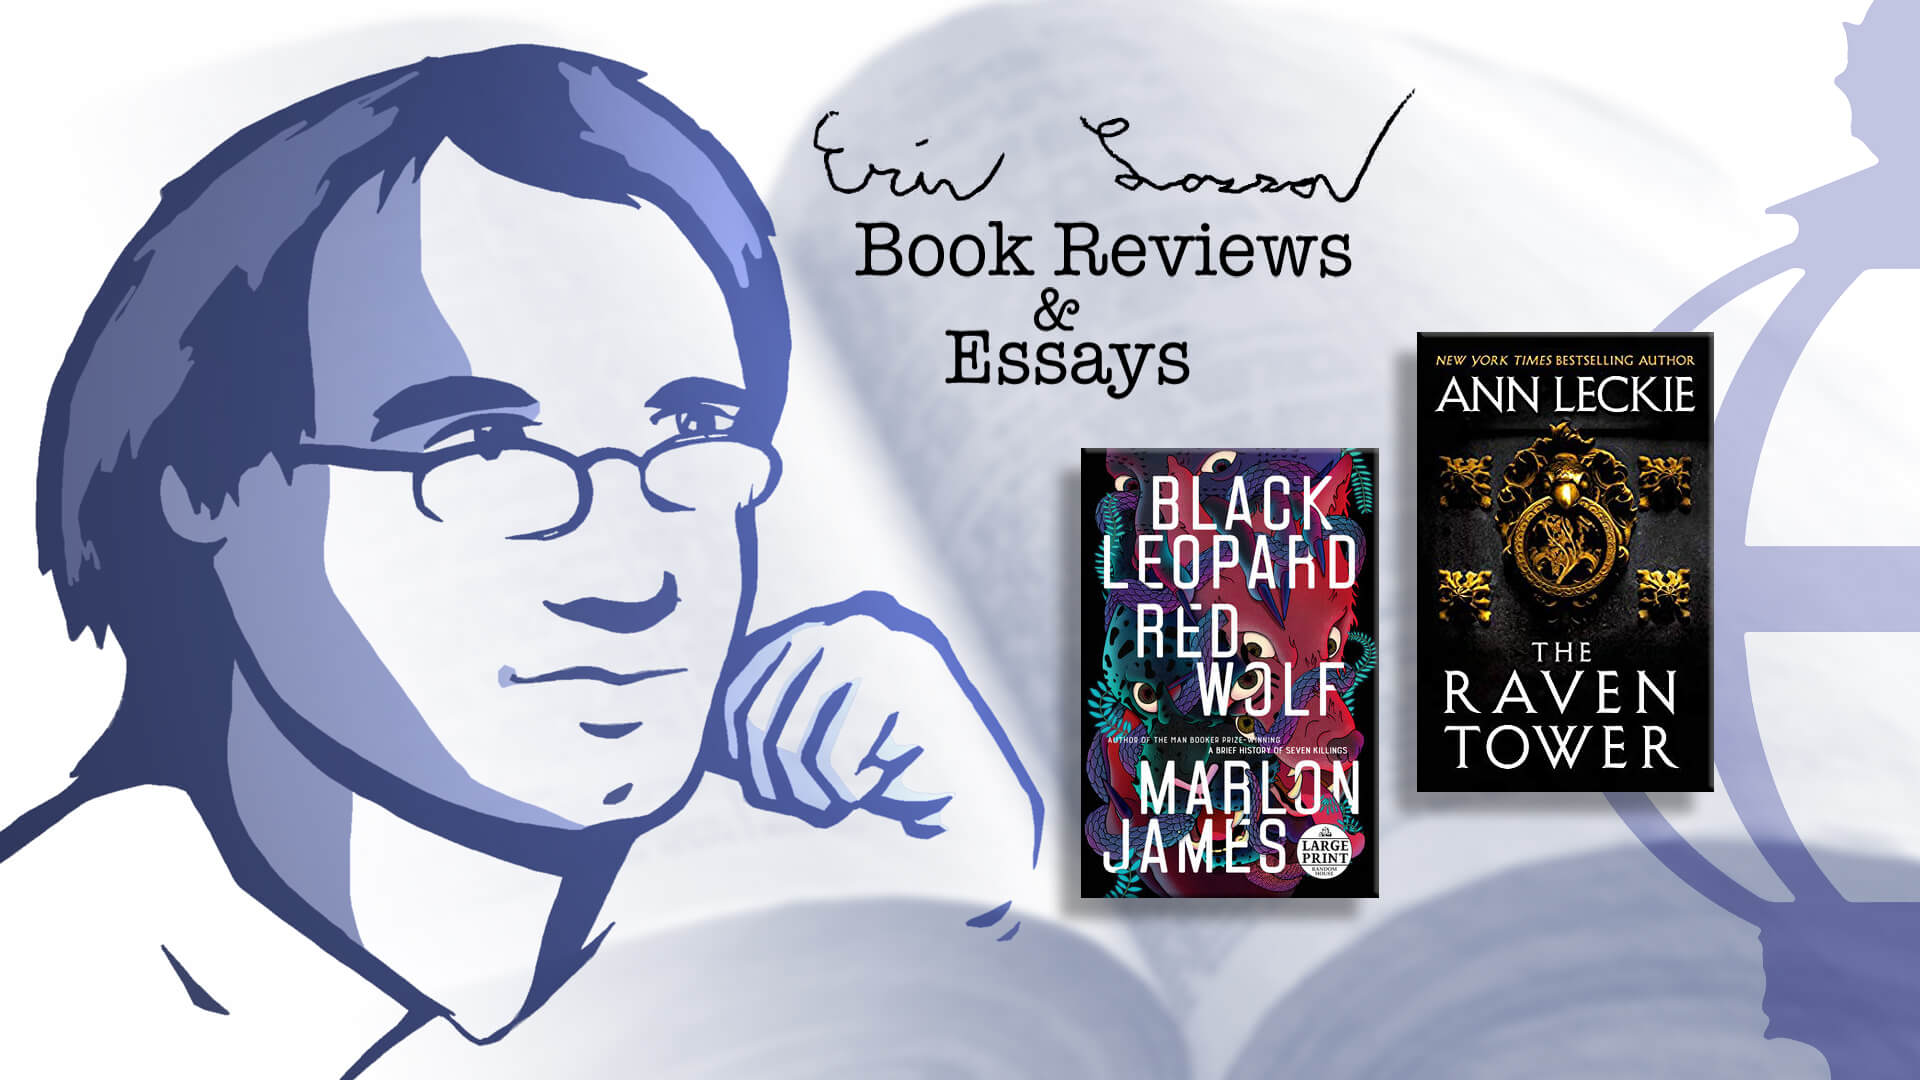 Erin's Book Reviews and Essays